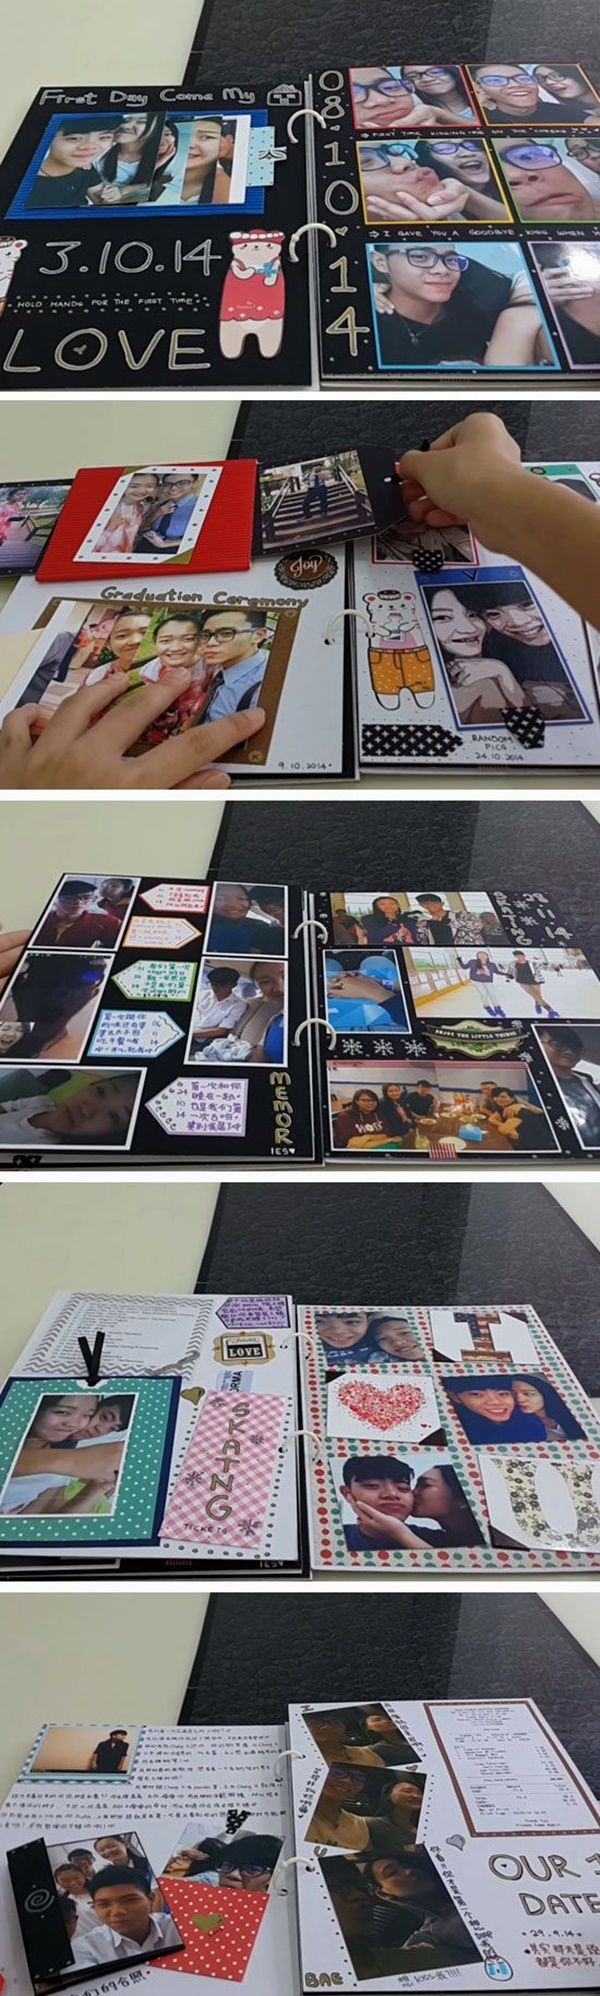 Scrapbook ideas relationships - 77 Homemade Valentines Day Ideas For Him That Re Really Cute Scrapbook Ideas For Couples Boyfriends Relationshipsrelationship